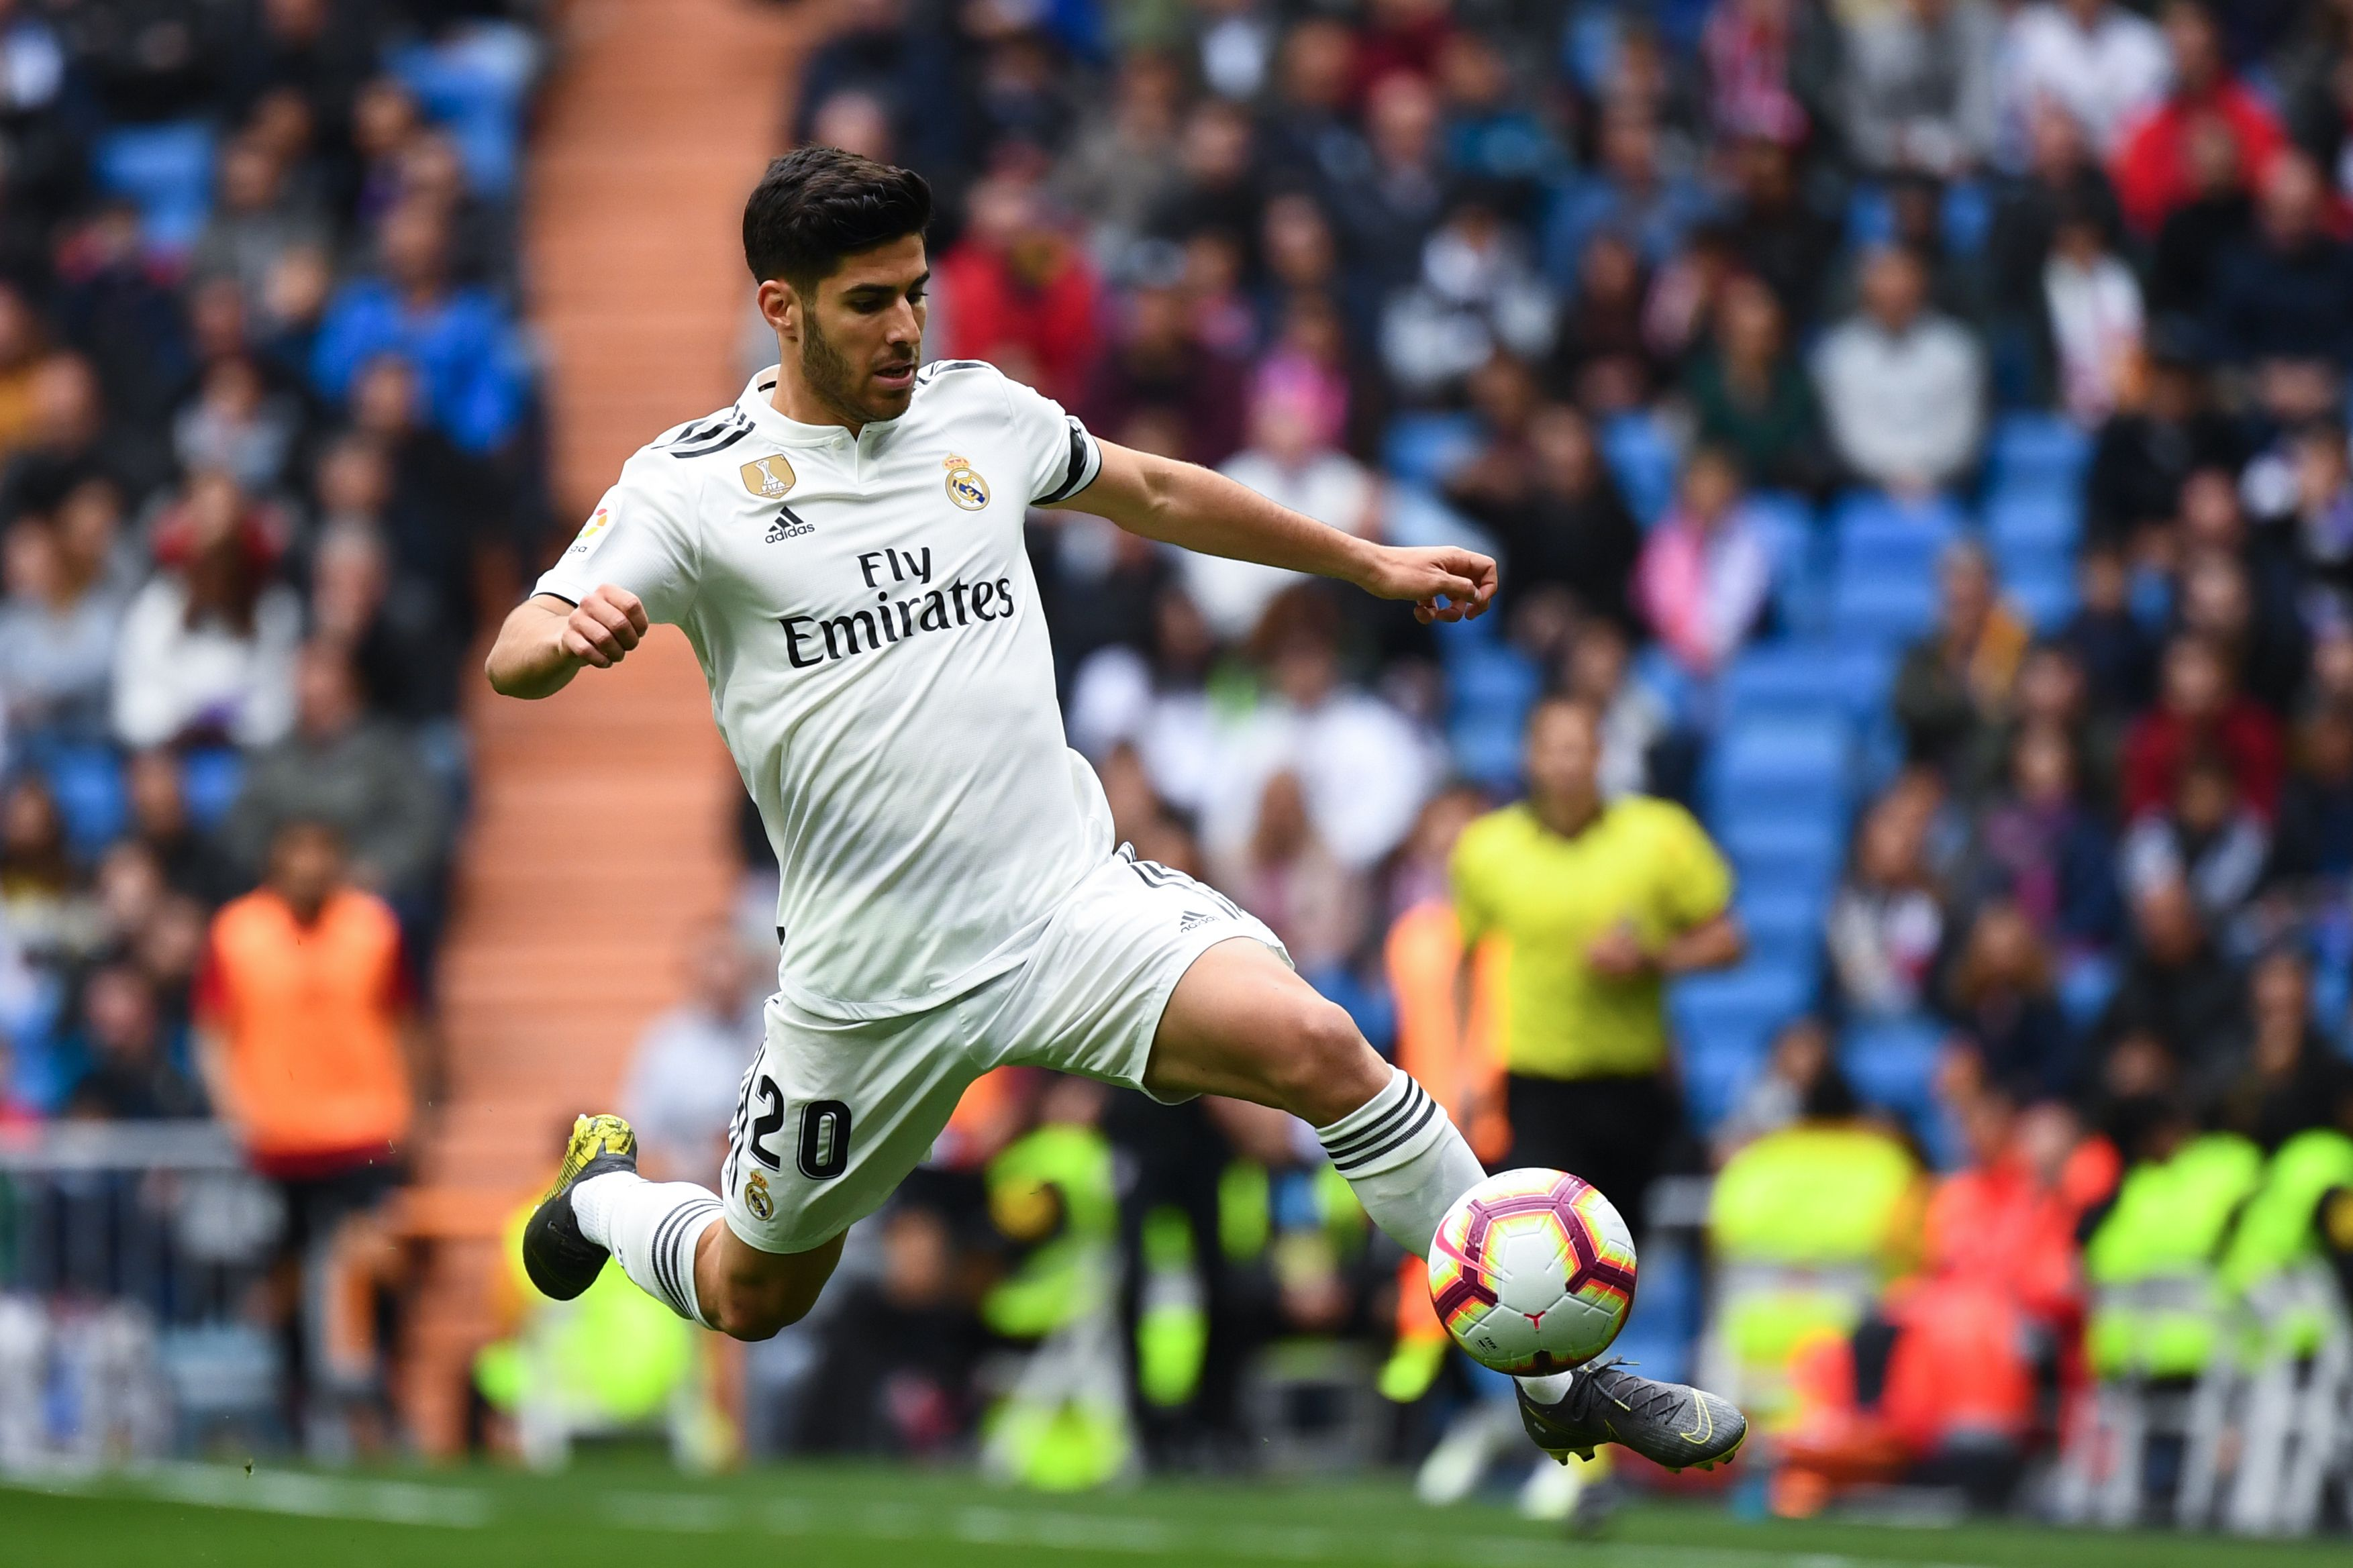 Time up for Asensio in Madrid? (Photo courtesy: AFP/Getty)